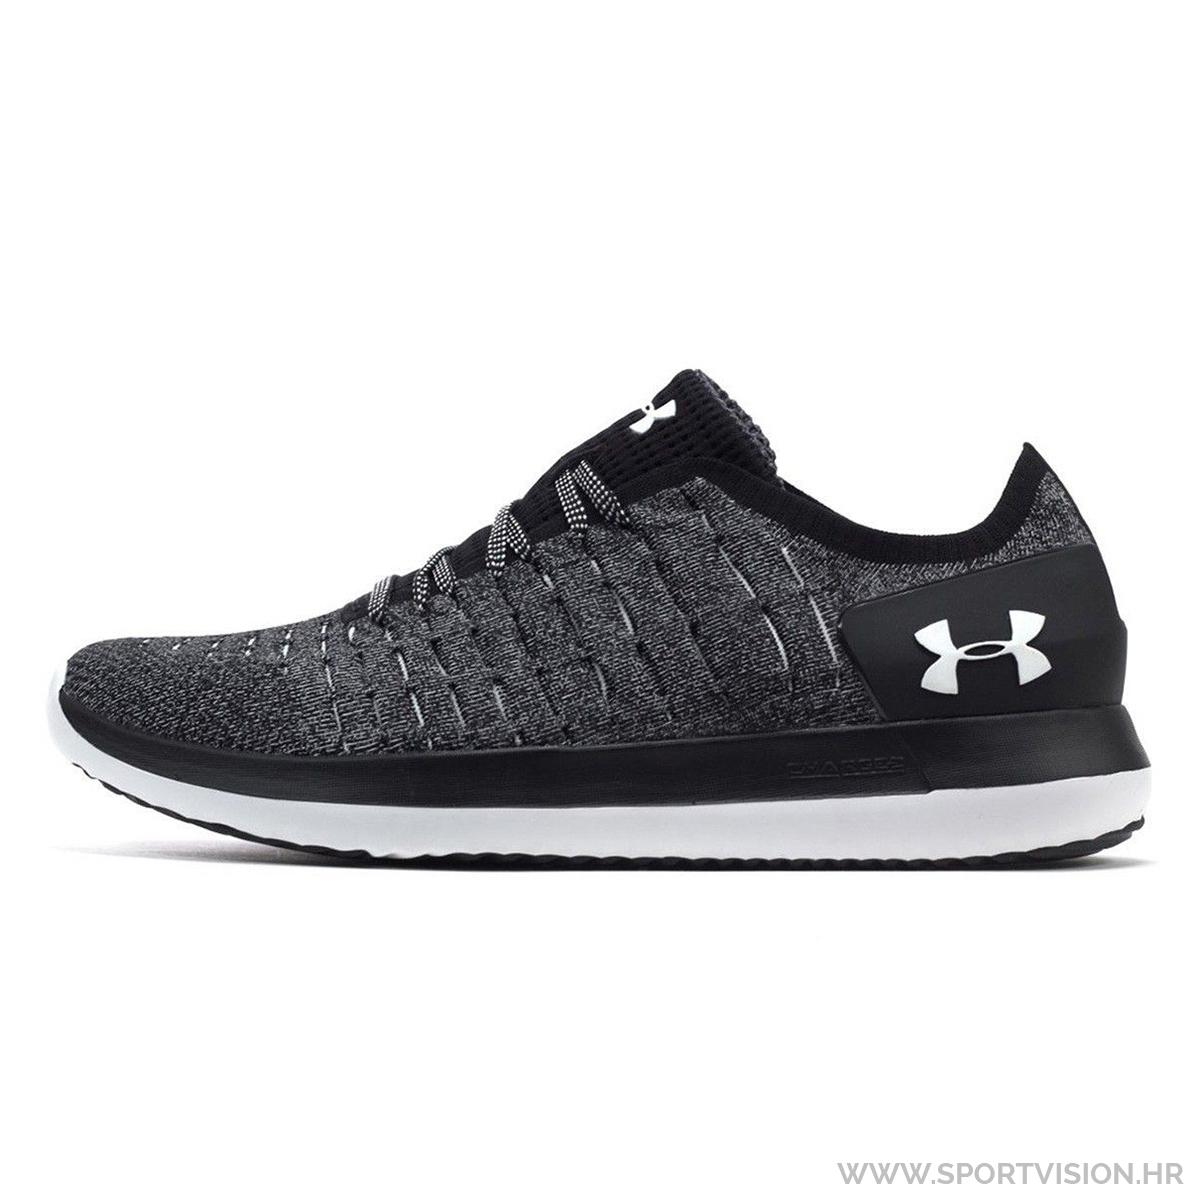 UNDER ARMOUR tenisice SLINGRIDE 2